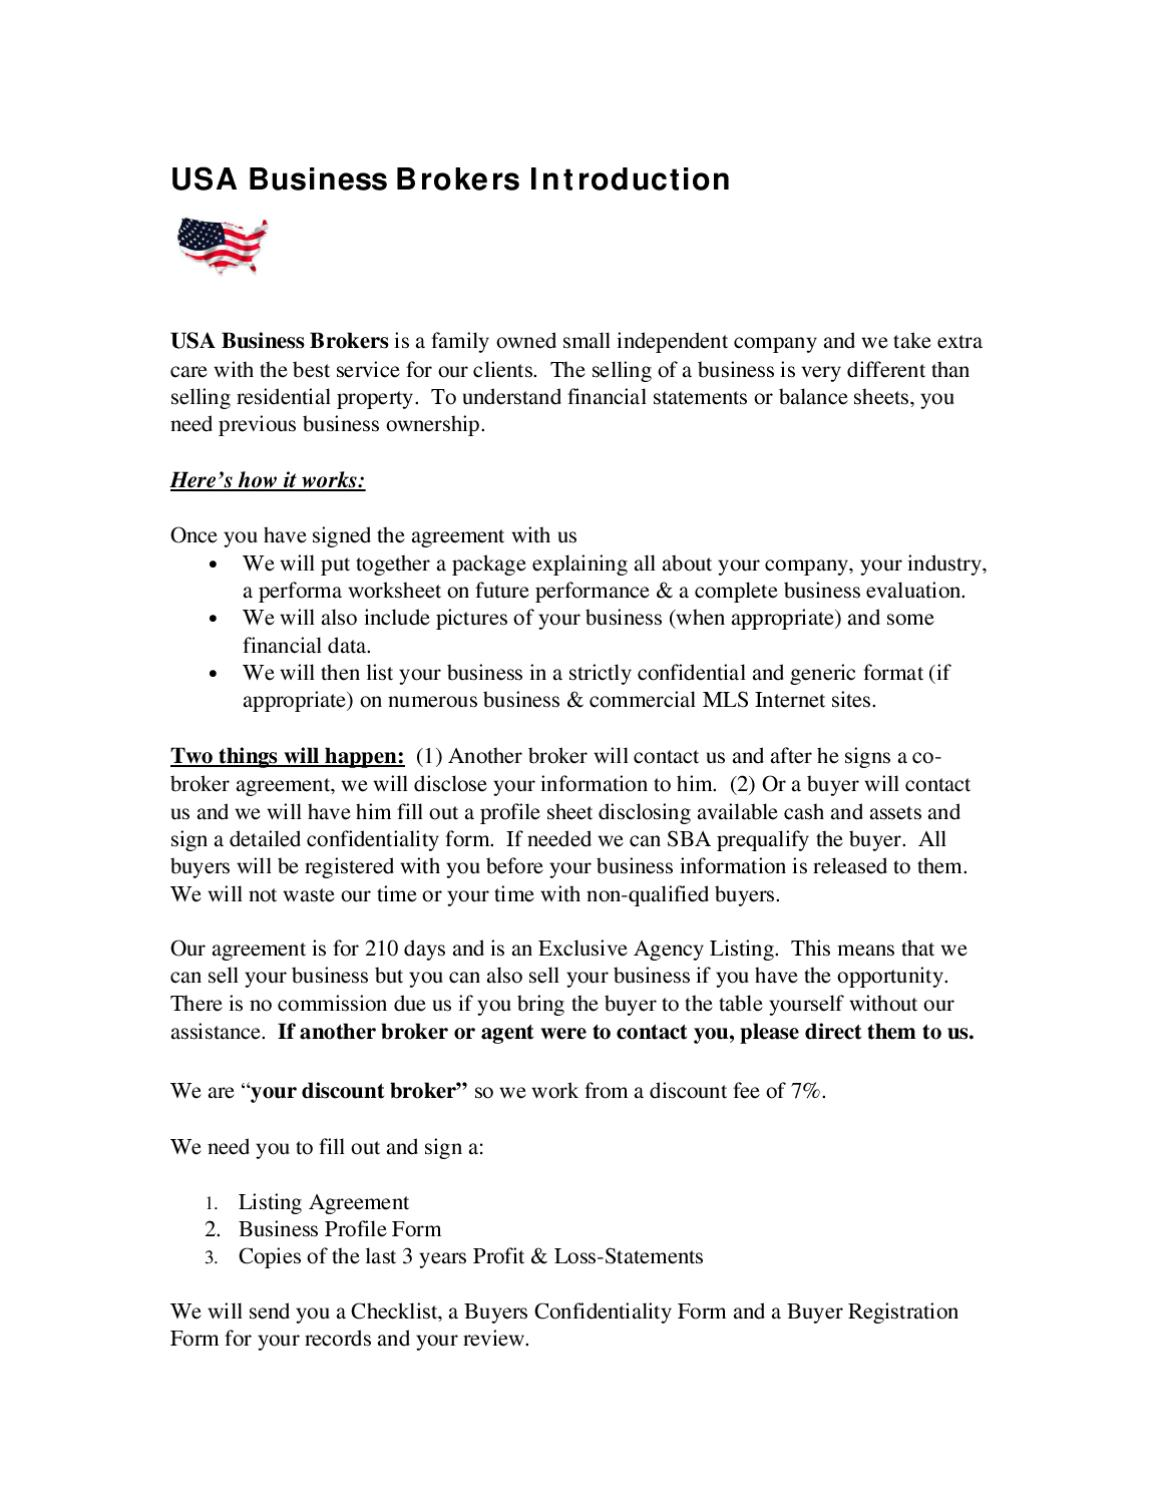 Introduction To Usa Business Brokers By Usa Business Brokers Inc